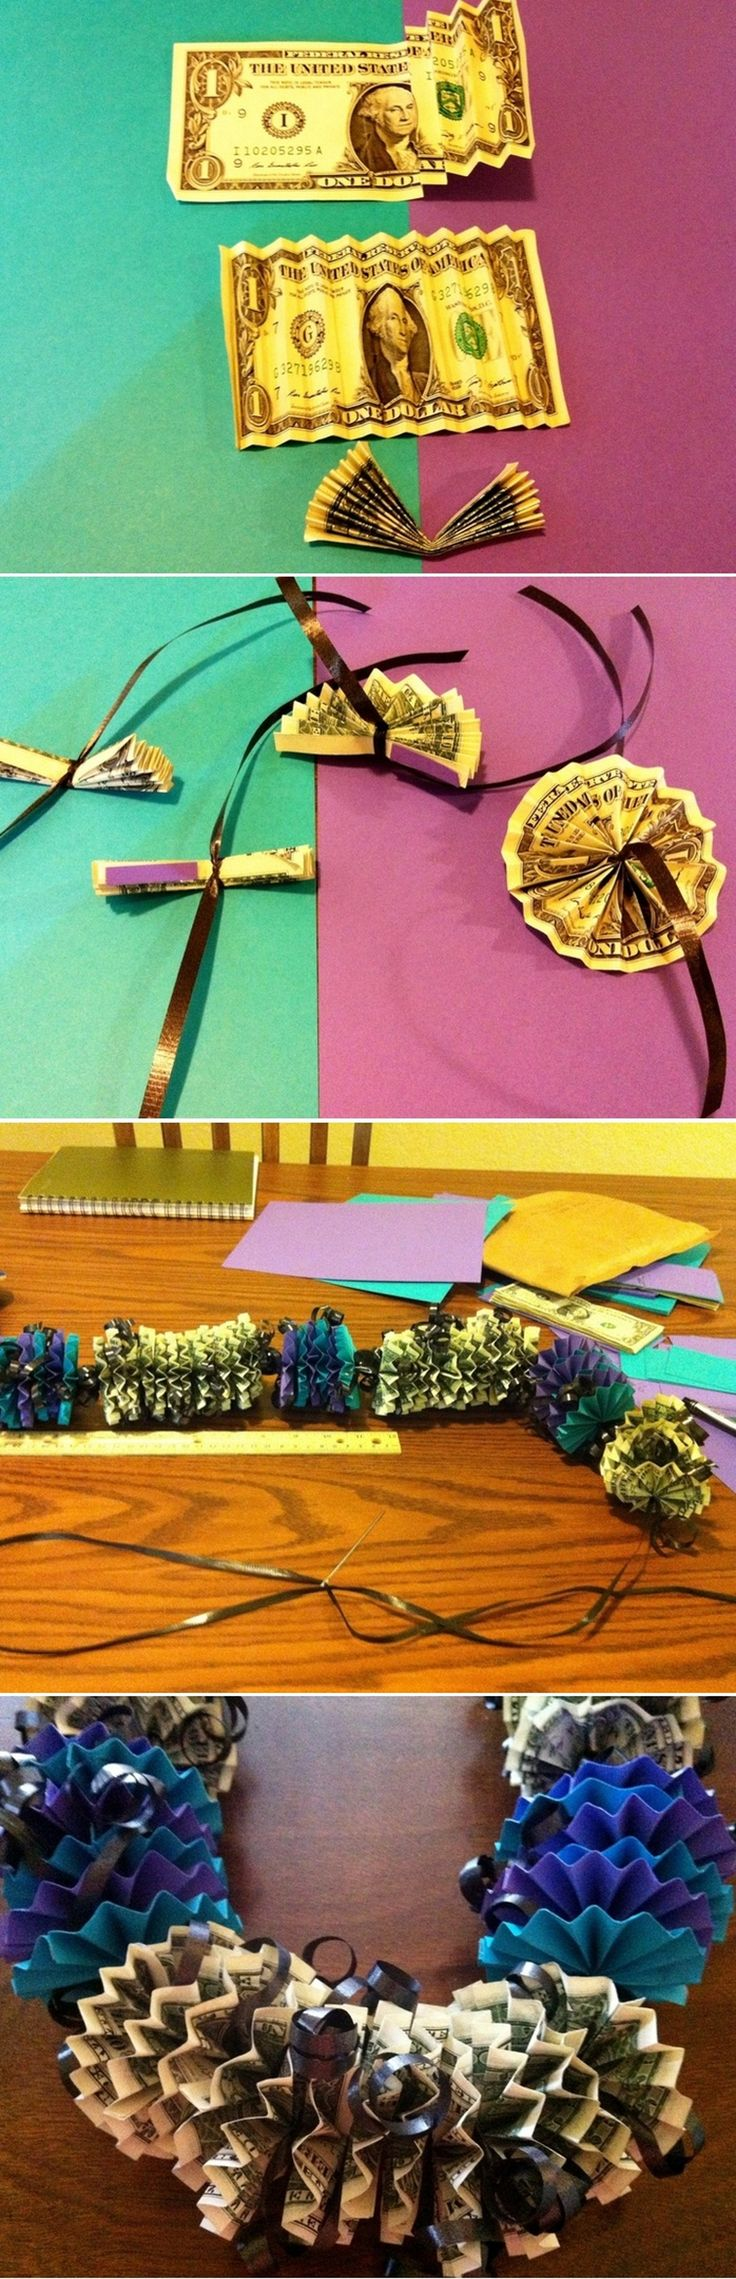 DIY Money Lei-great for gift for teens birthdays, christmas, or other holidays when you just dont know what to get them!